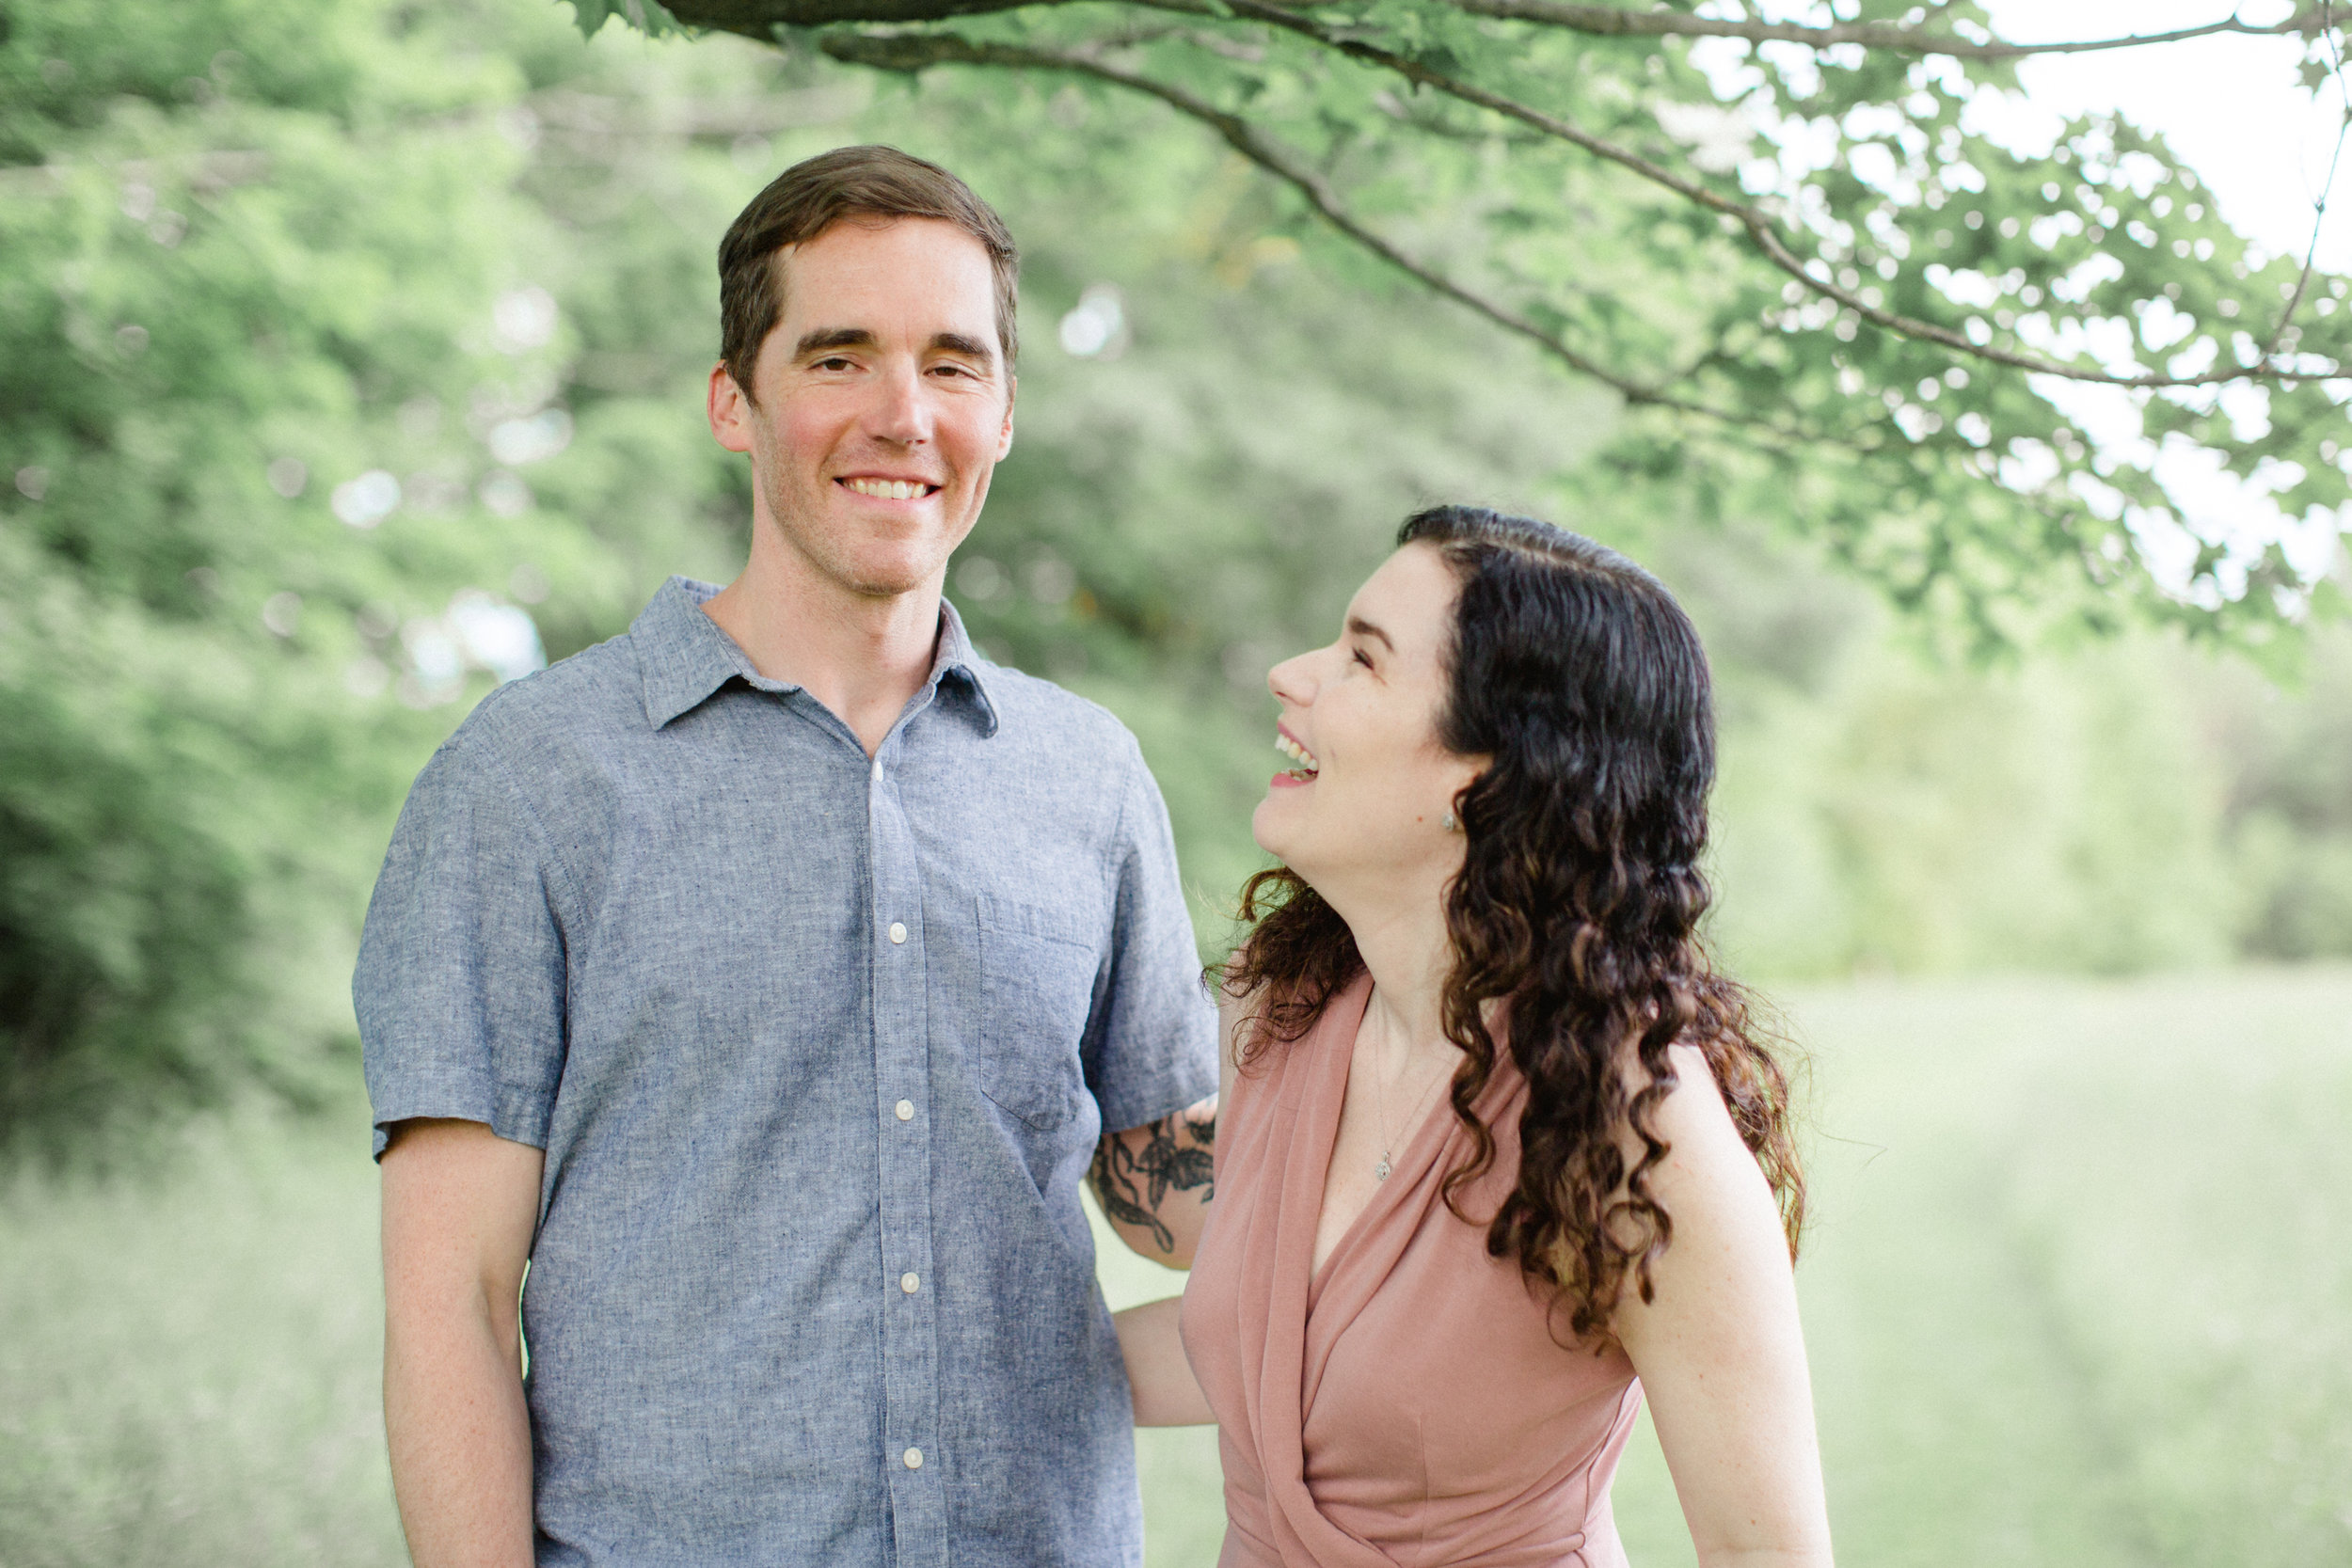 Moscow PA Engagement Session Photos_JDP-58.jpg